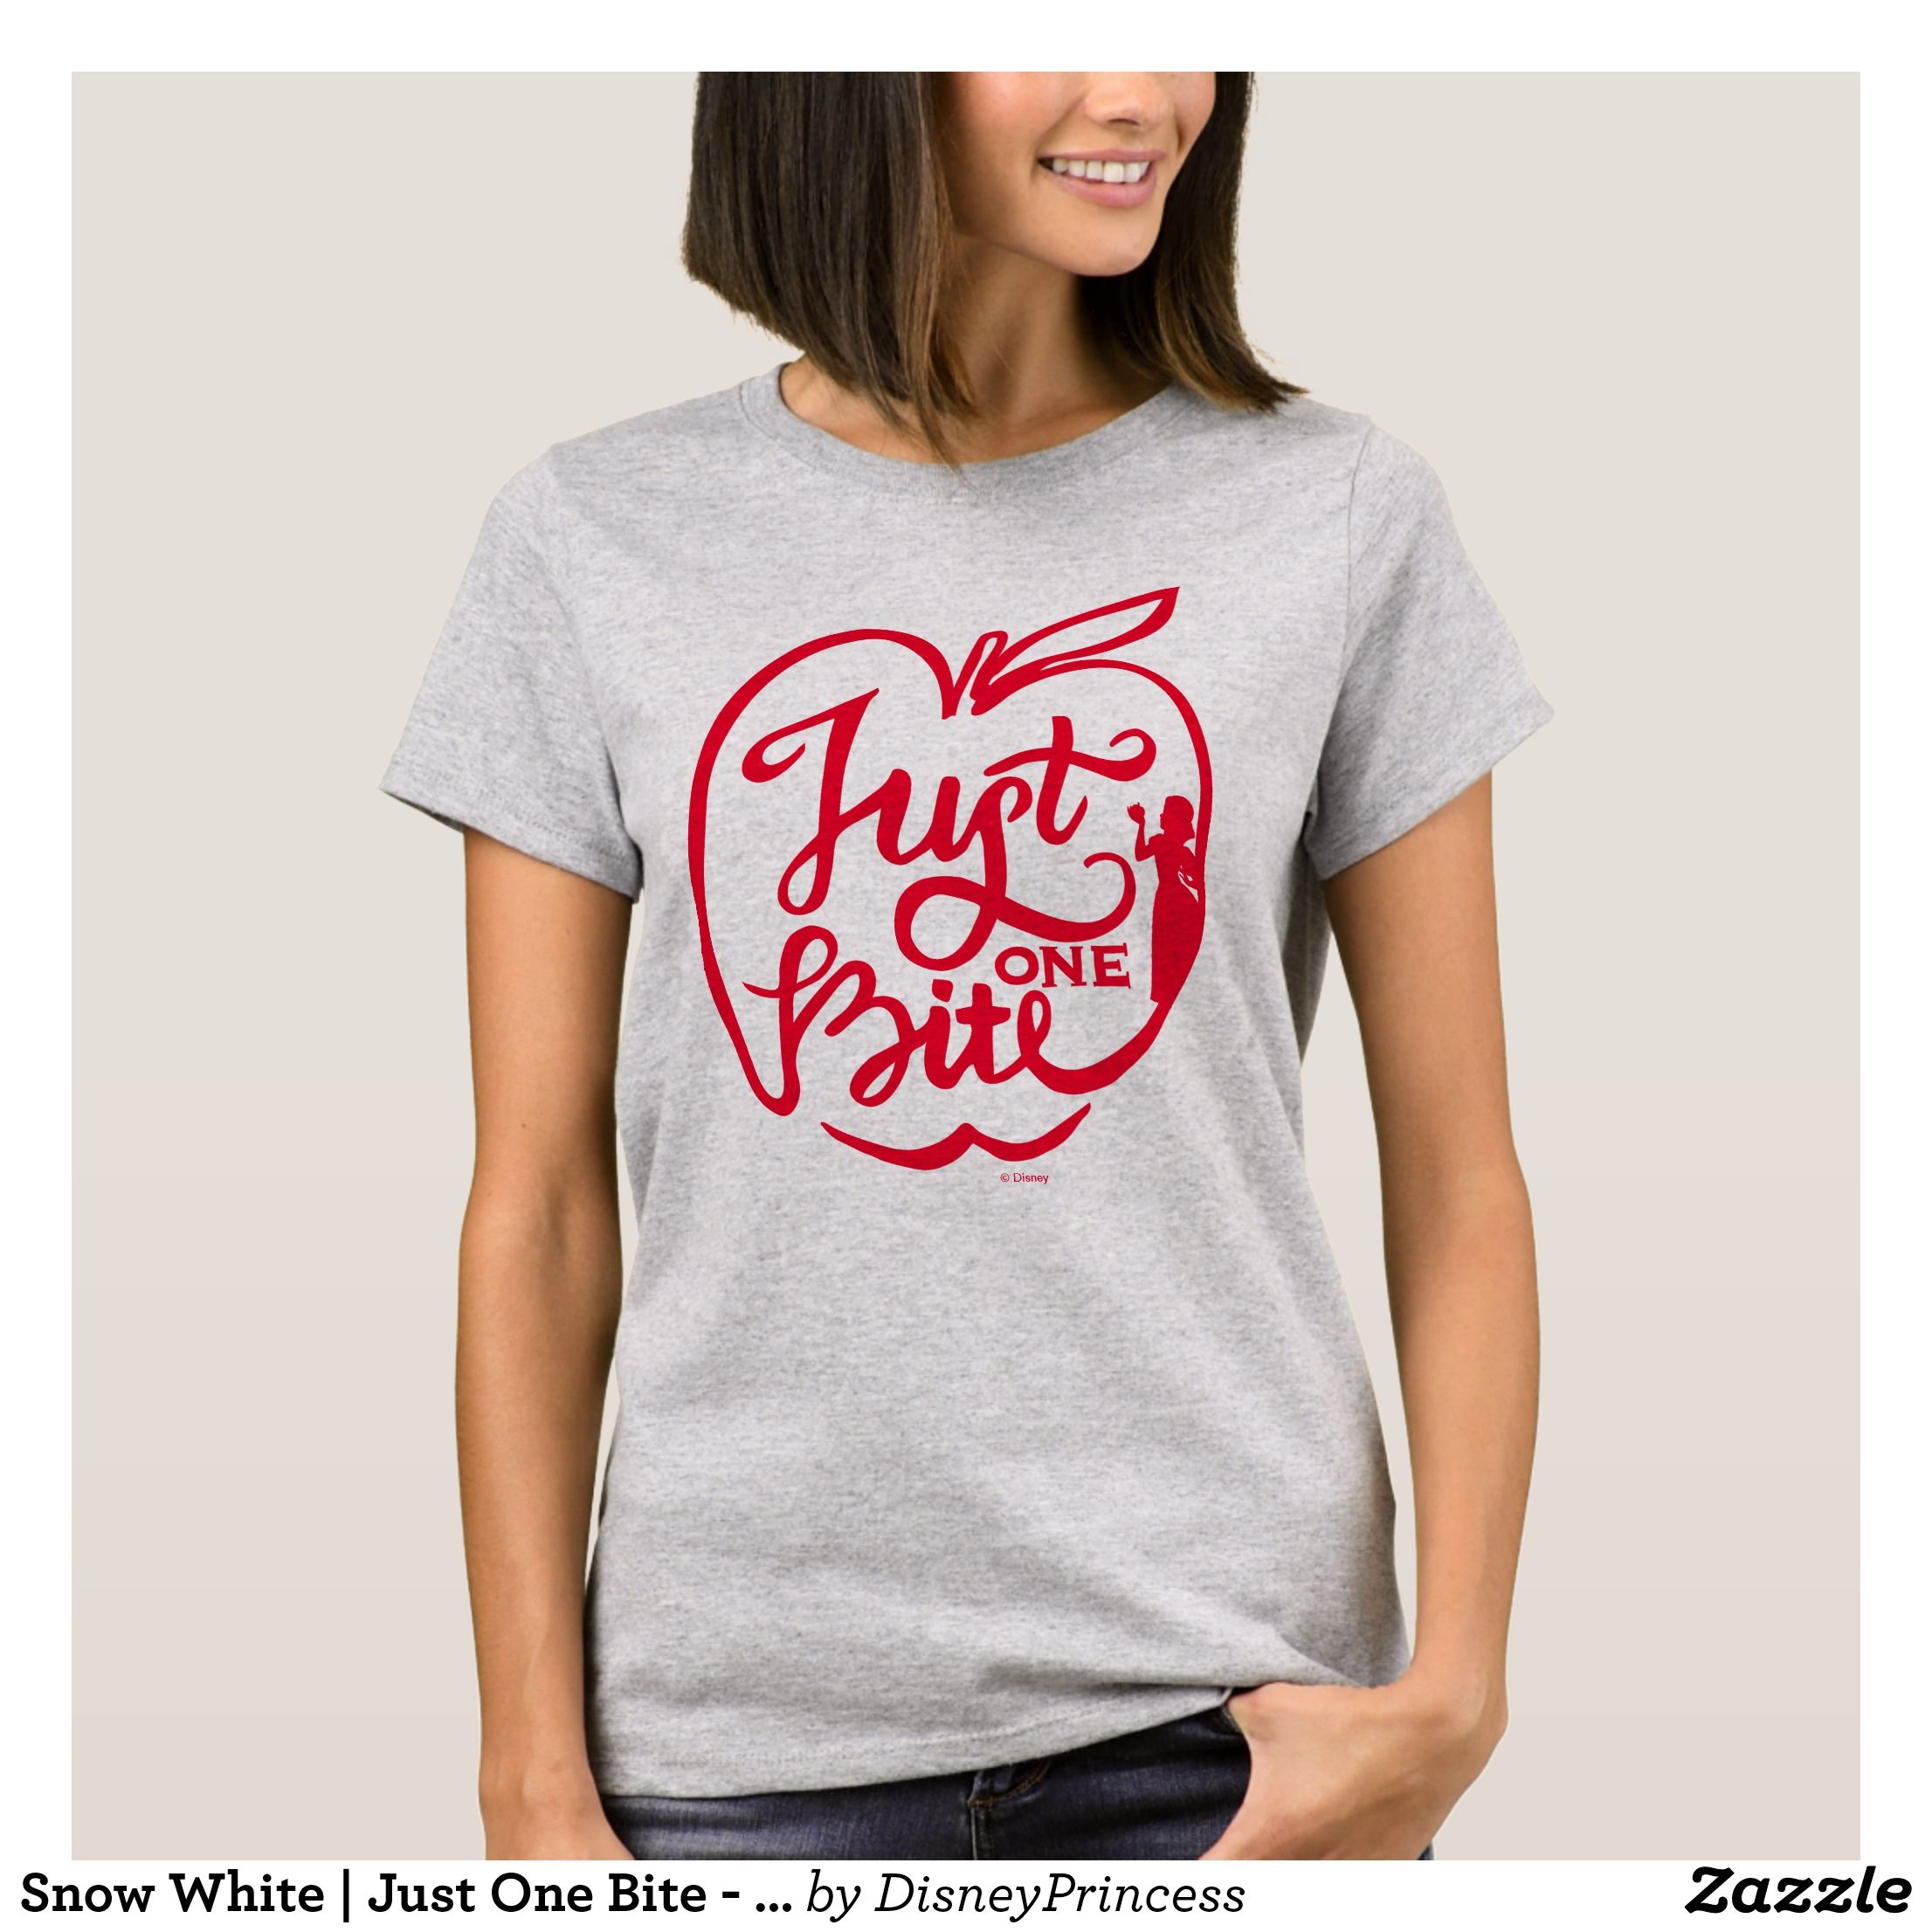 86efa0402 Snow White | Just One Bite - Red T-Shirt - Fashionable Women's Shirts By  Creative Talented Graphic Designers - #shirts #tshirts #fashion #apparel # clothes ...